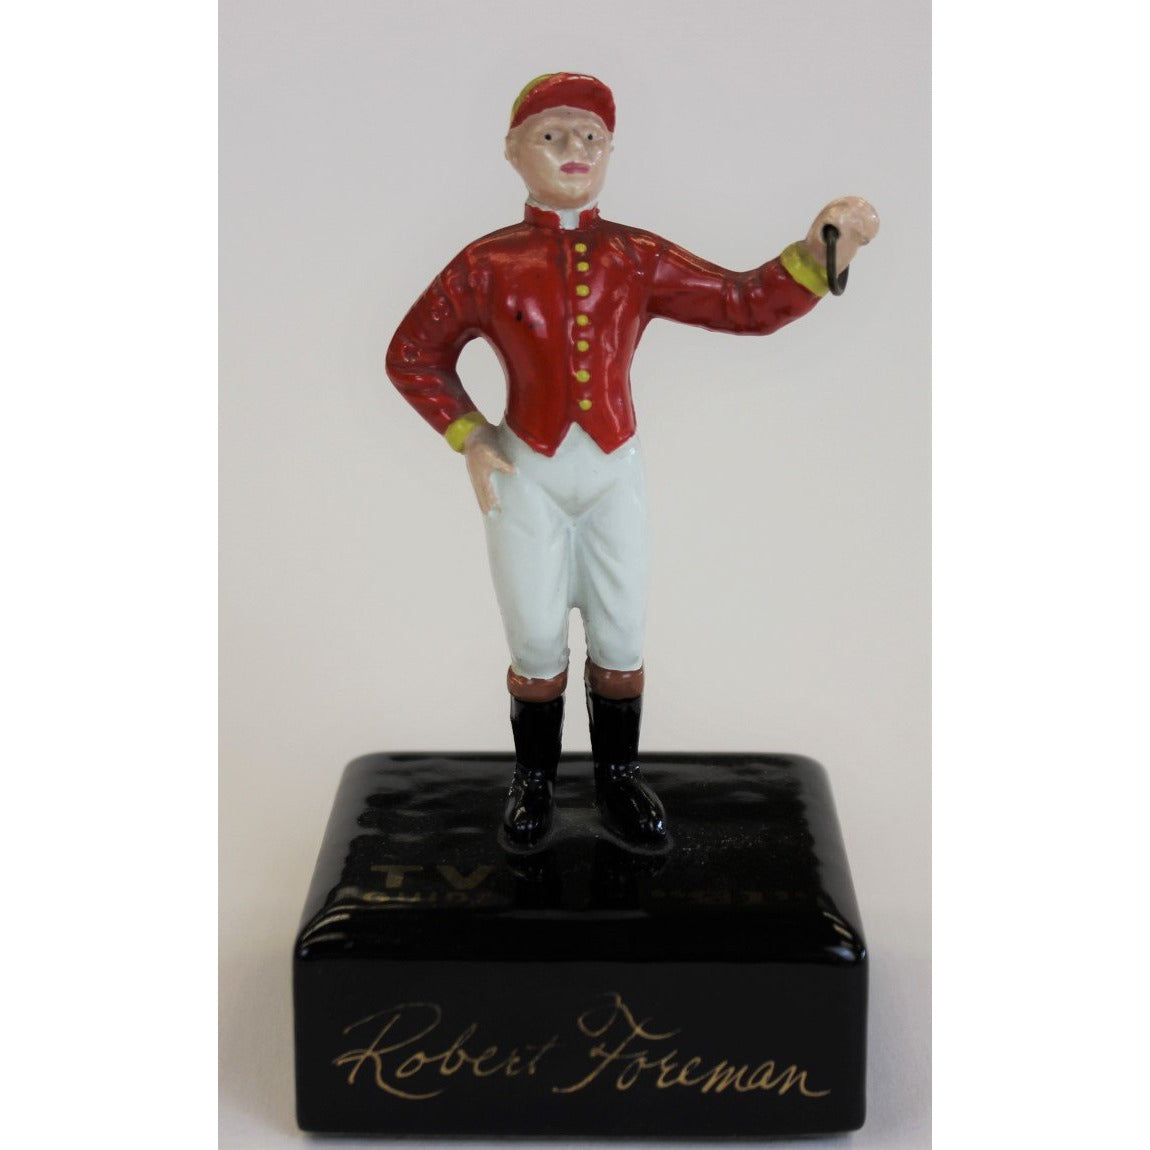 The 21 Jockey Paperweight